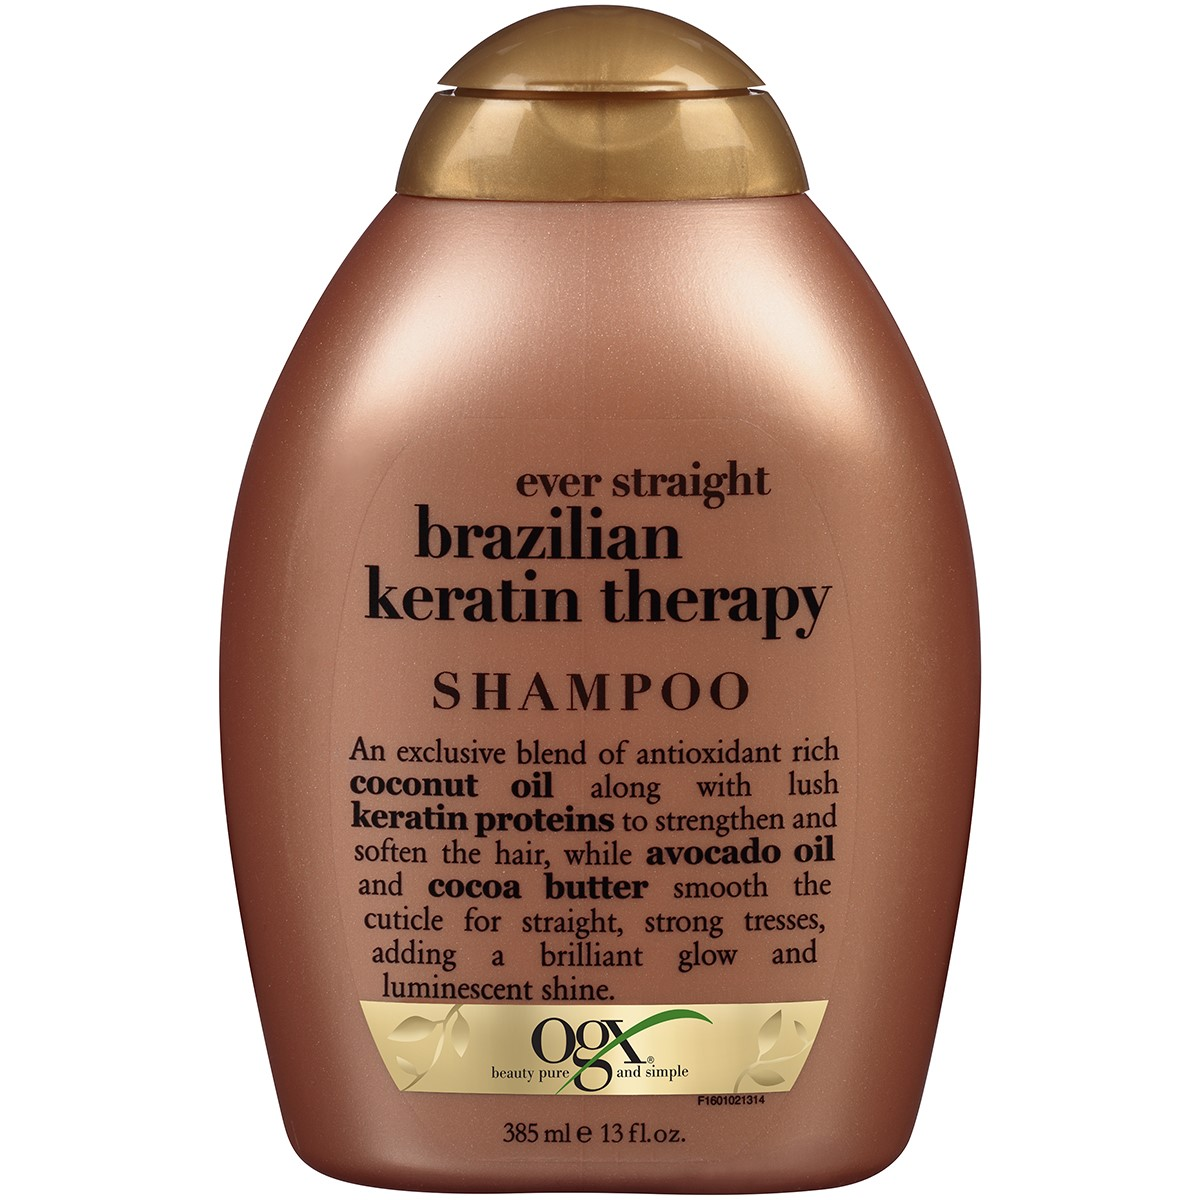 OGX Ever Straight Brazilian Keratin Therapy Shampoo, 13 Oz